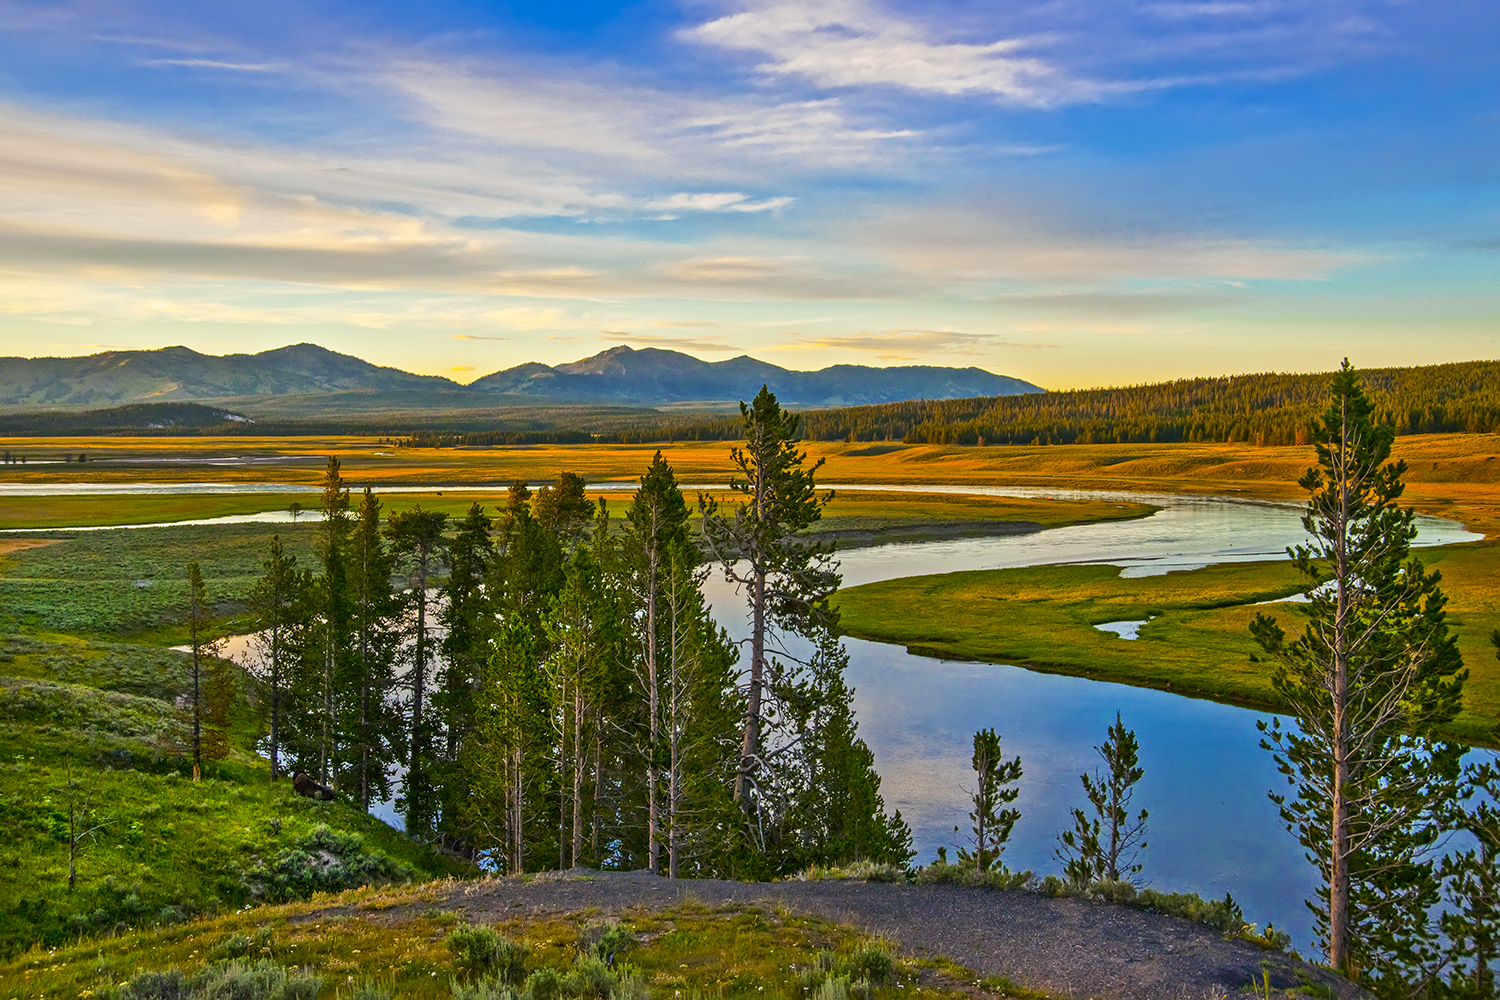 Sunset on the Yellowstone River from Grizzly Point